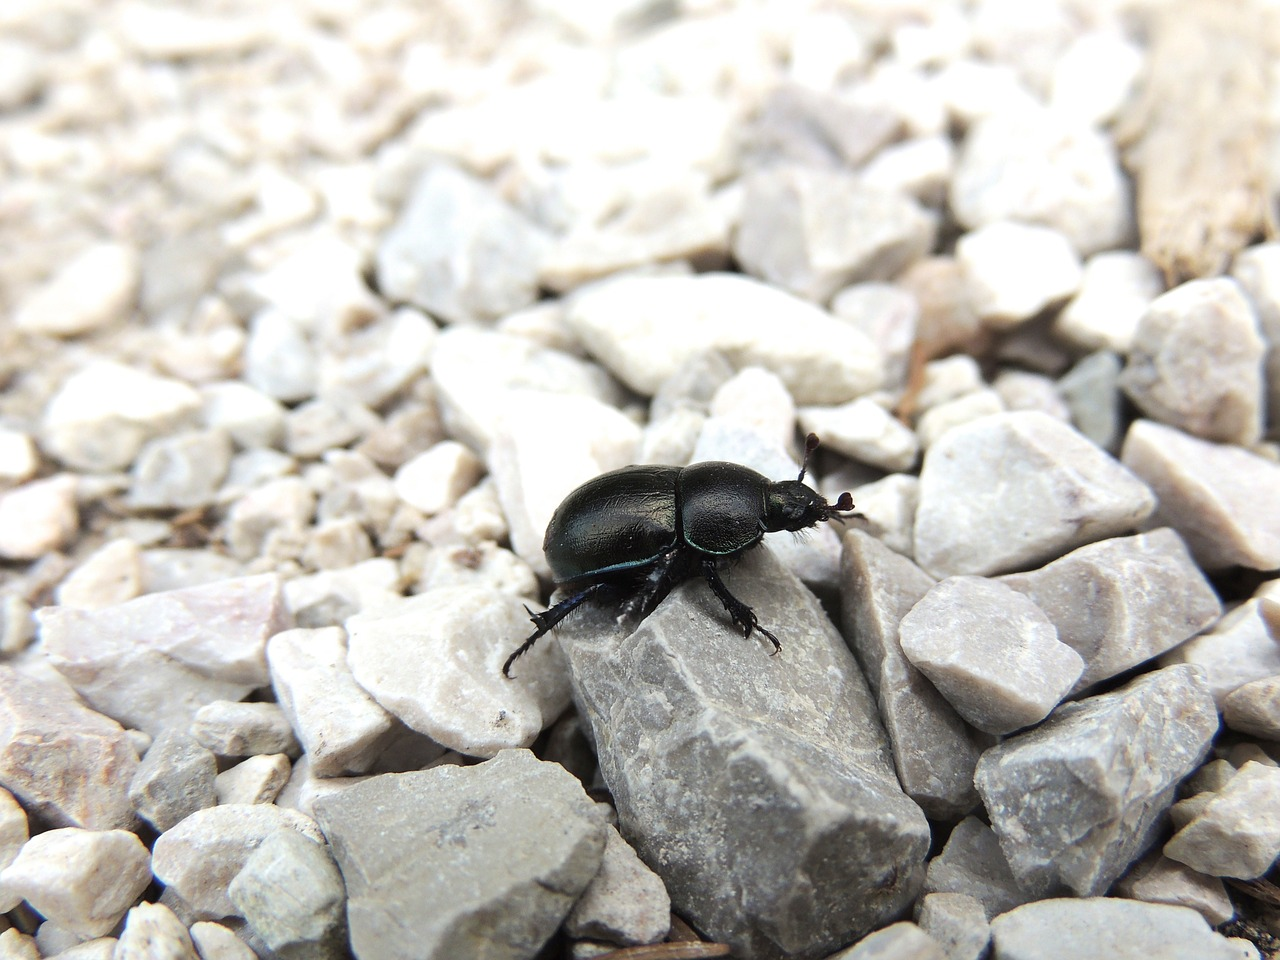 beetle black beetle insect free photo